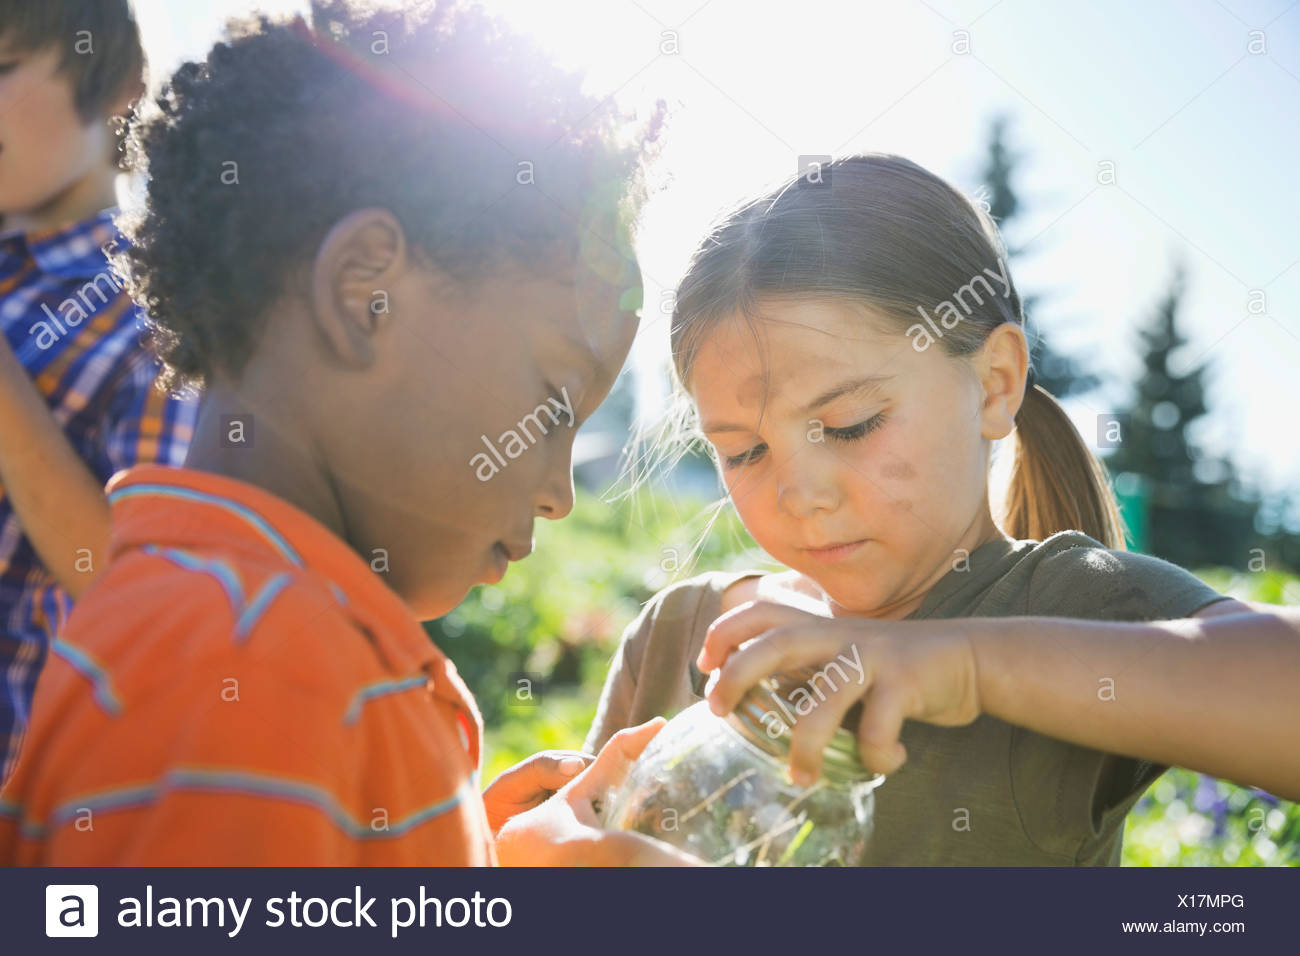 Children catching garden bugs in jar - Stock Image